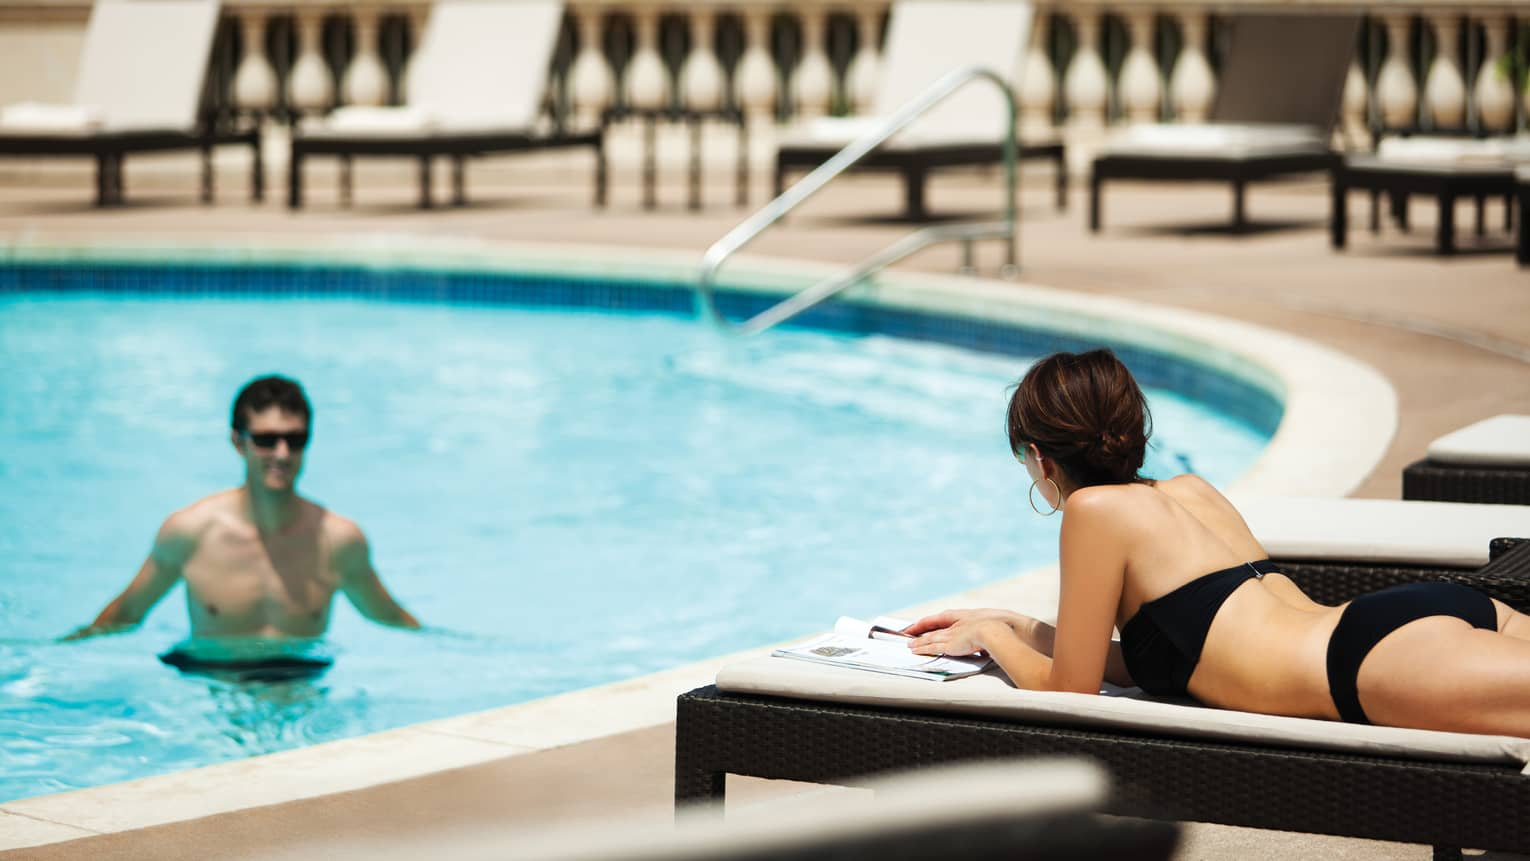 Man wades in outdoor swimming pool, looks up at woman in swimsuit lying on deck chair